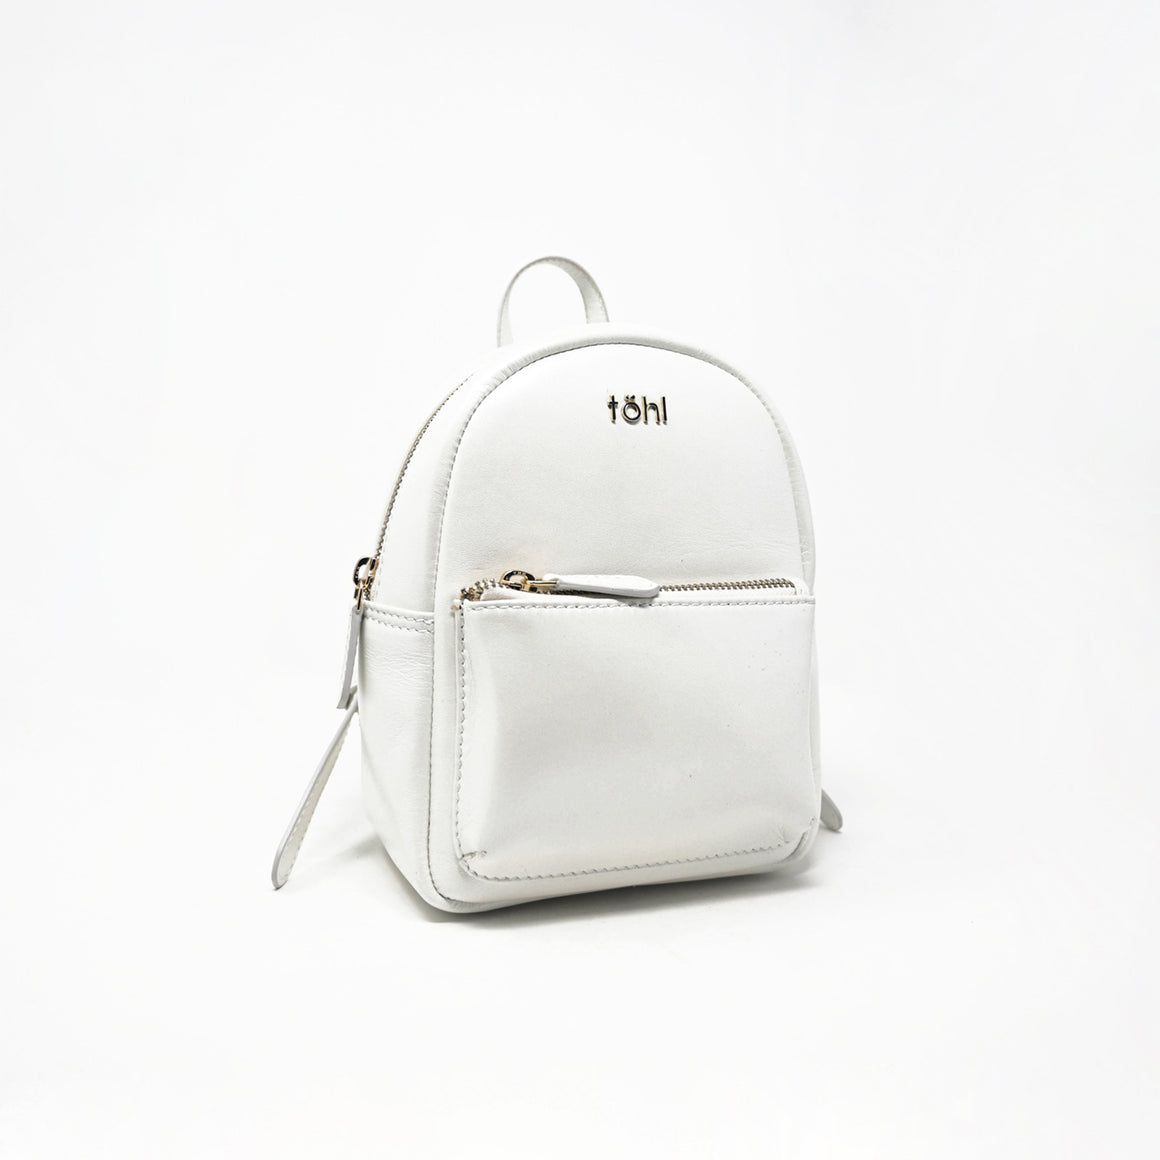 BP0017 - TOHL NEVERN WOMEN'S BACKPACK - PEARL WEISS